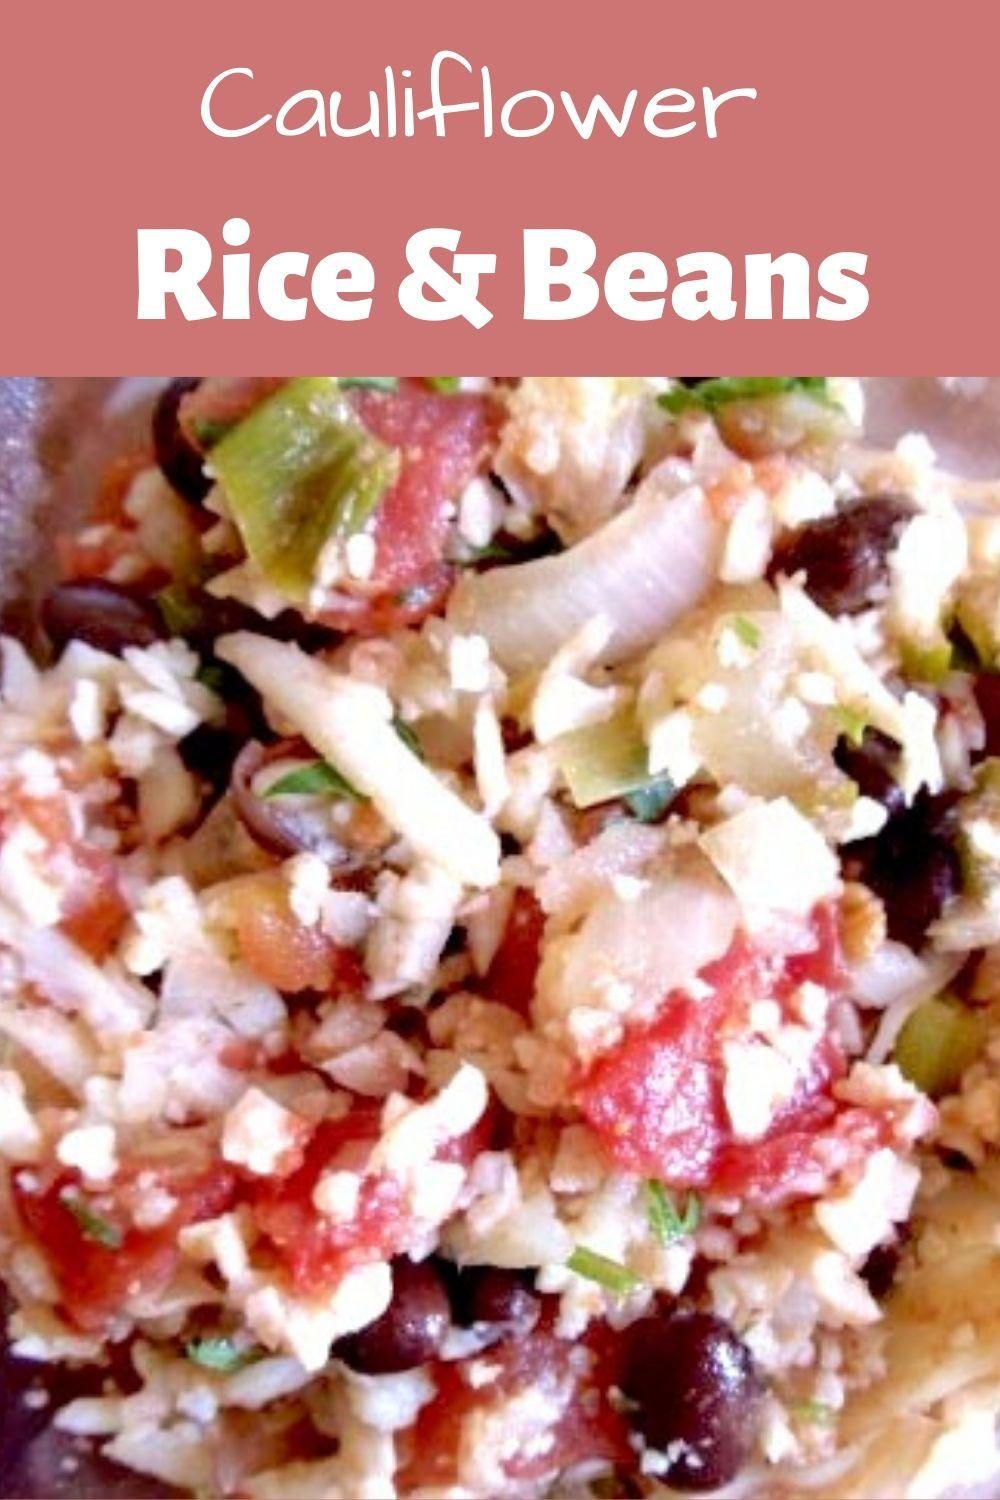 Cauliflower Rice and Beans Pinnable Graphic